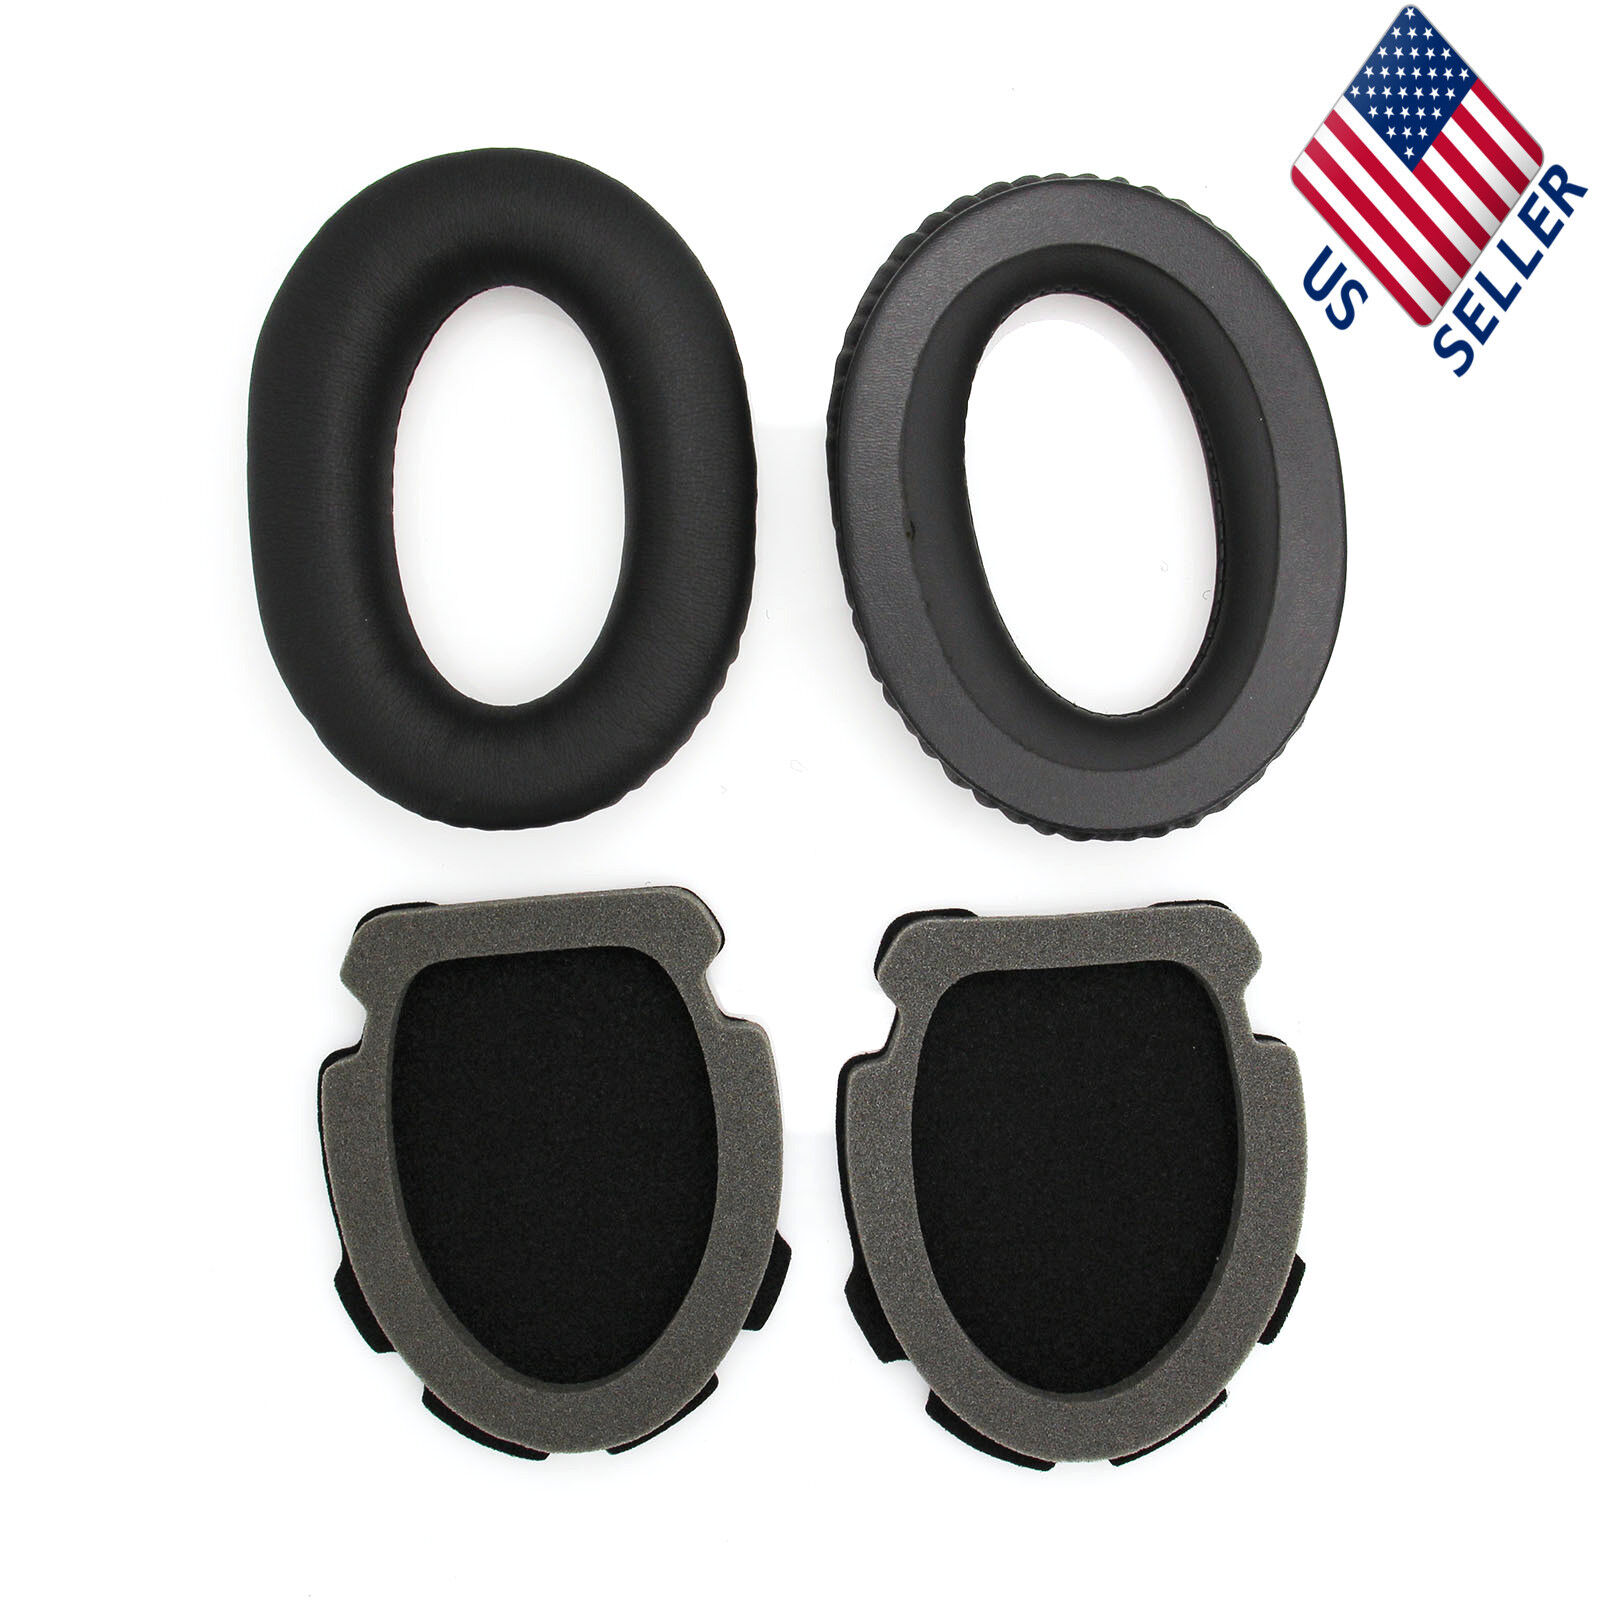 Replacement Ear Pads Cushions for Bose Aviation Headset X A10  A20 Headphones